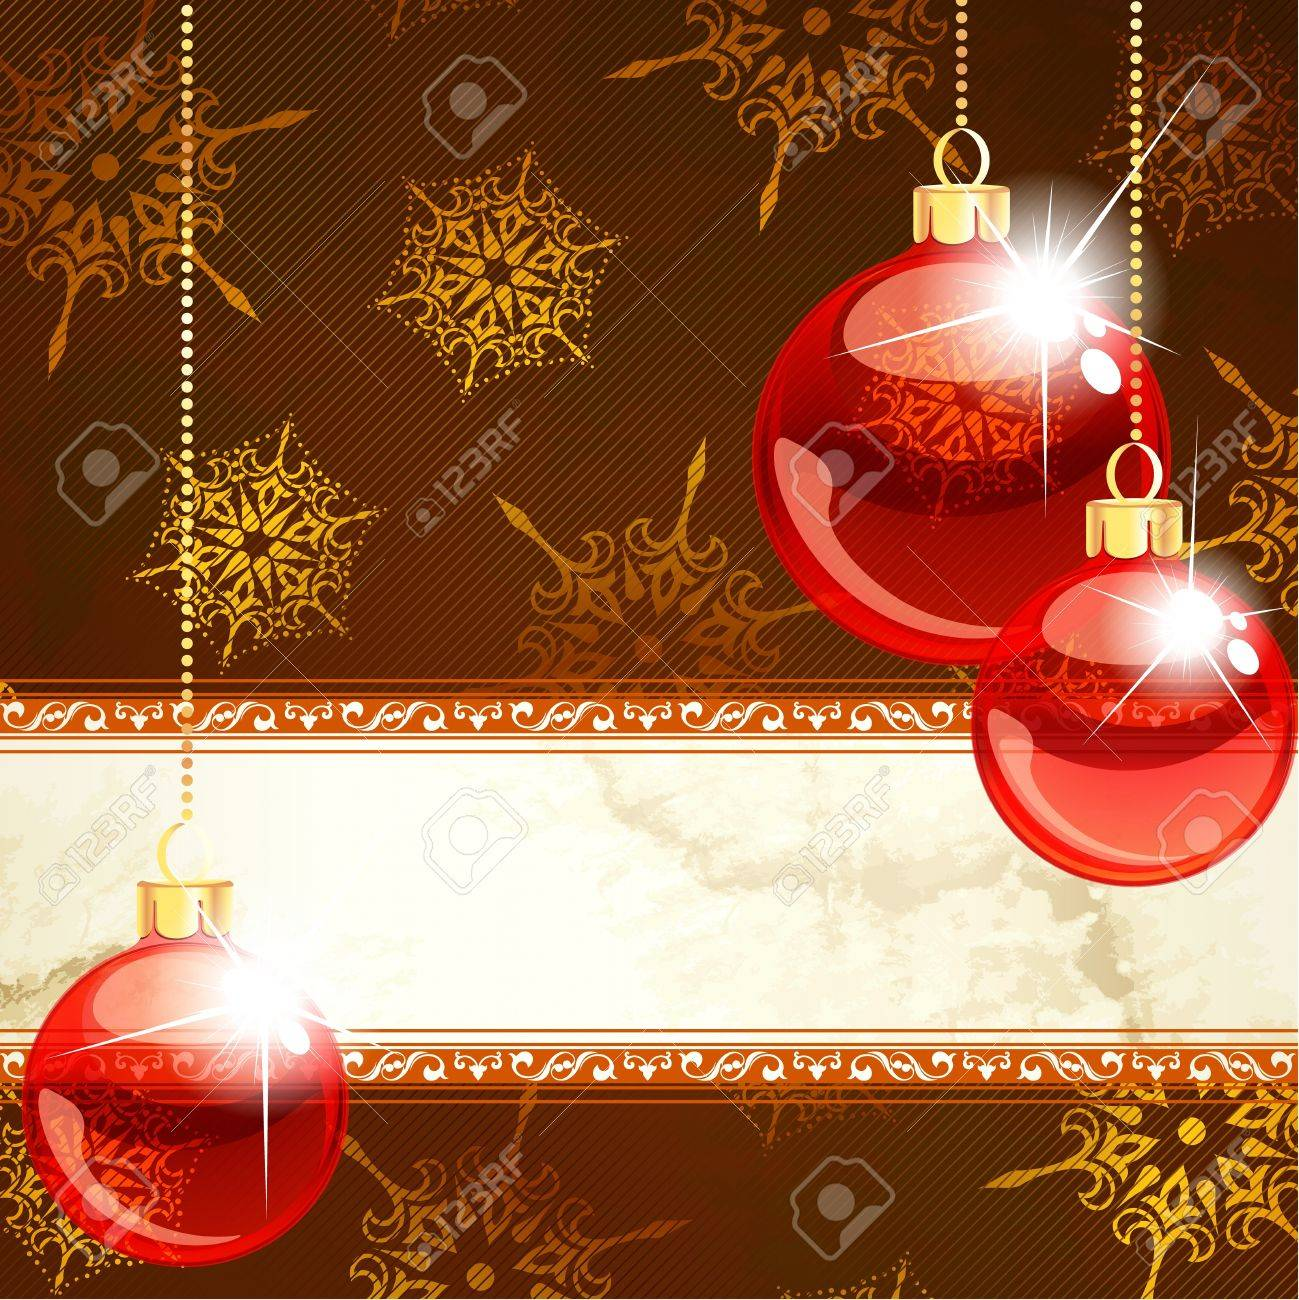 Gold and red ornaments - Red And Gold Christmas Banner With Transparent Glass Ornaments Graphics Are Grouped And In Several